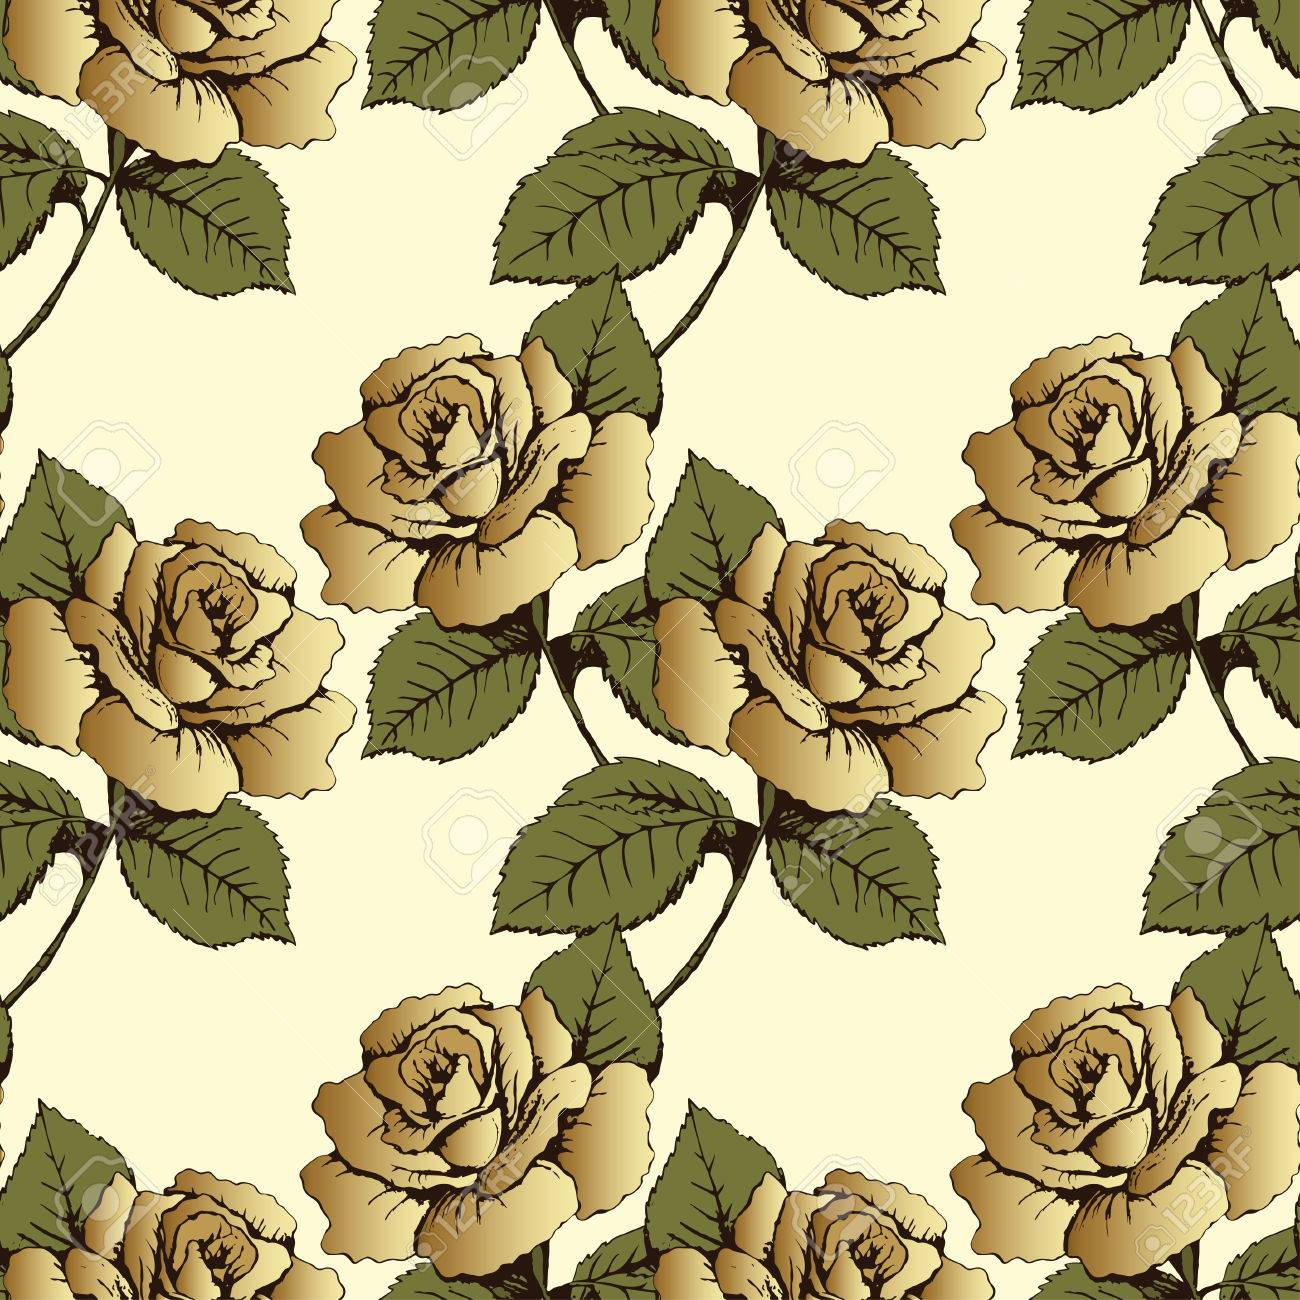 Seamless Pattern From Gold Flowers Roses Woven Buds Leaves And Stems On